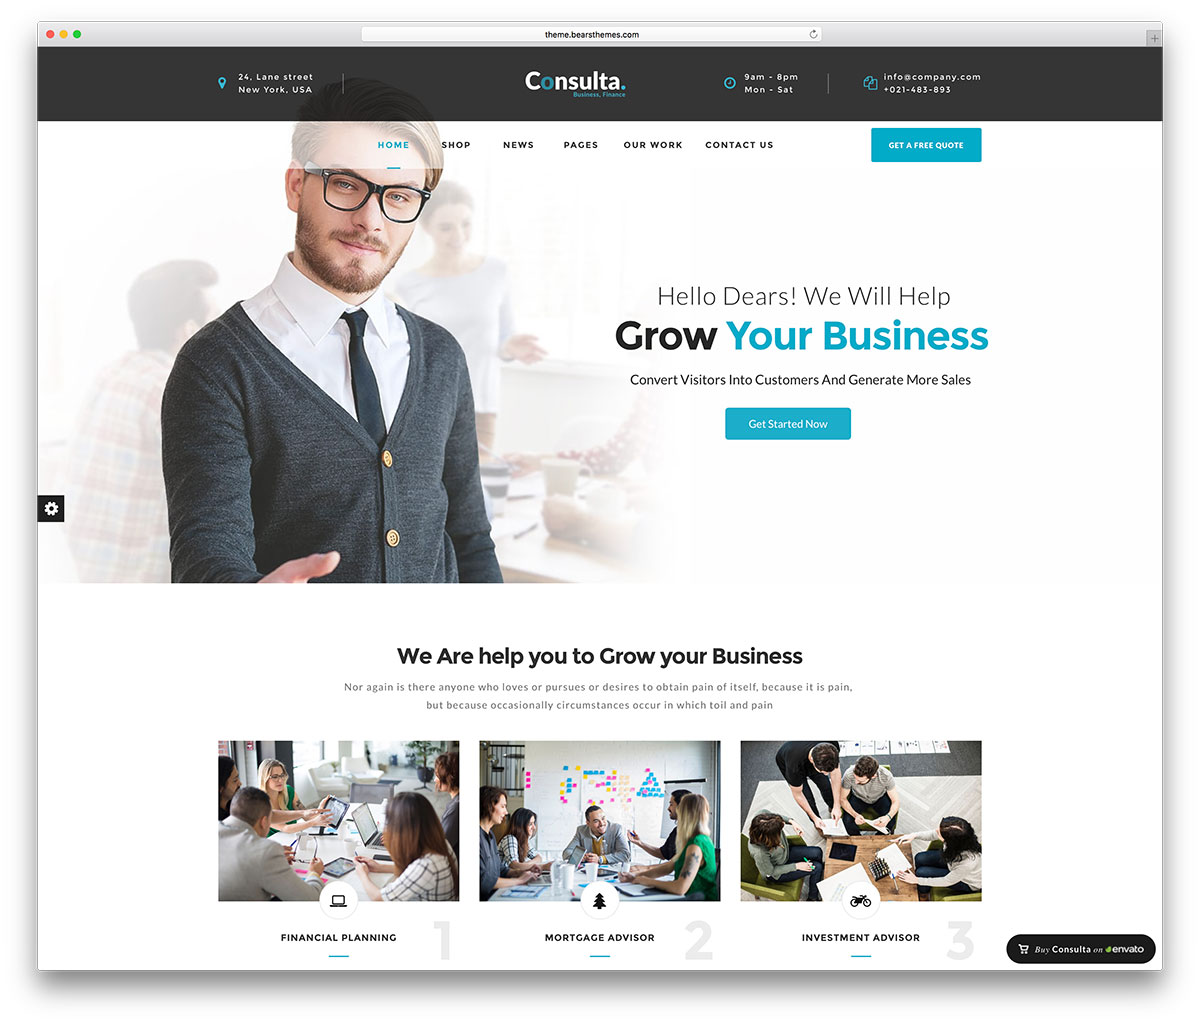 20 best business consulting wordpress themes 2018 colorlib consulta small business wordpress theme accmission Image collections